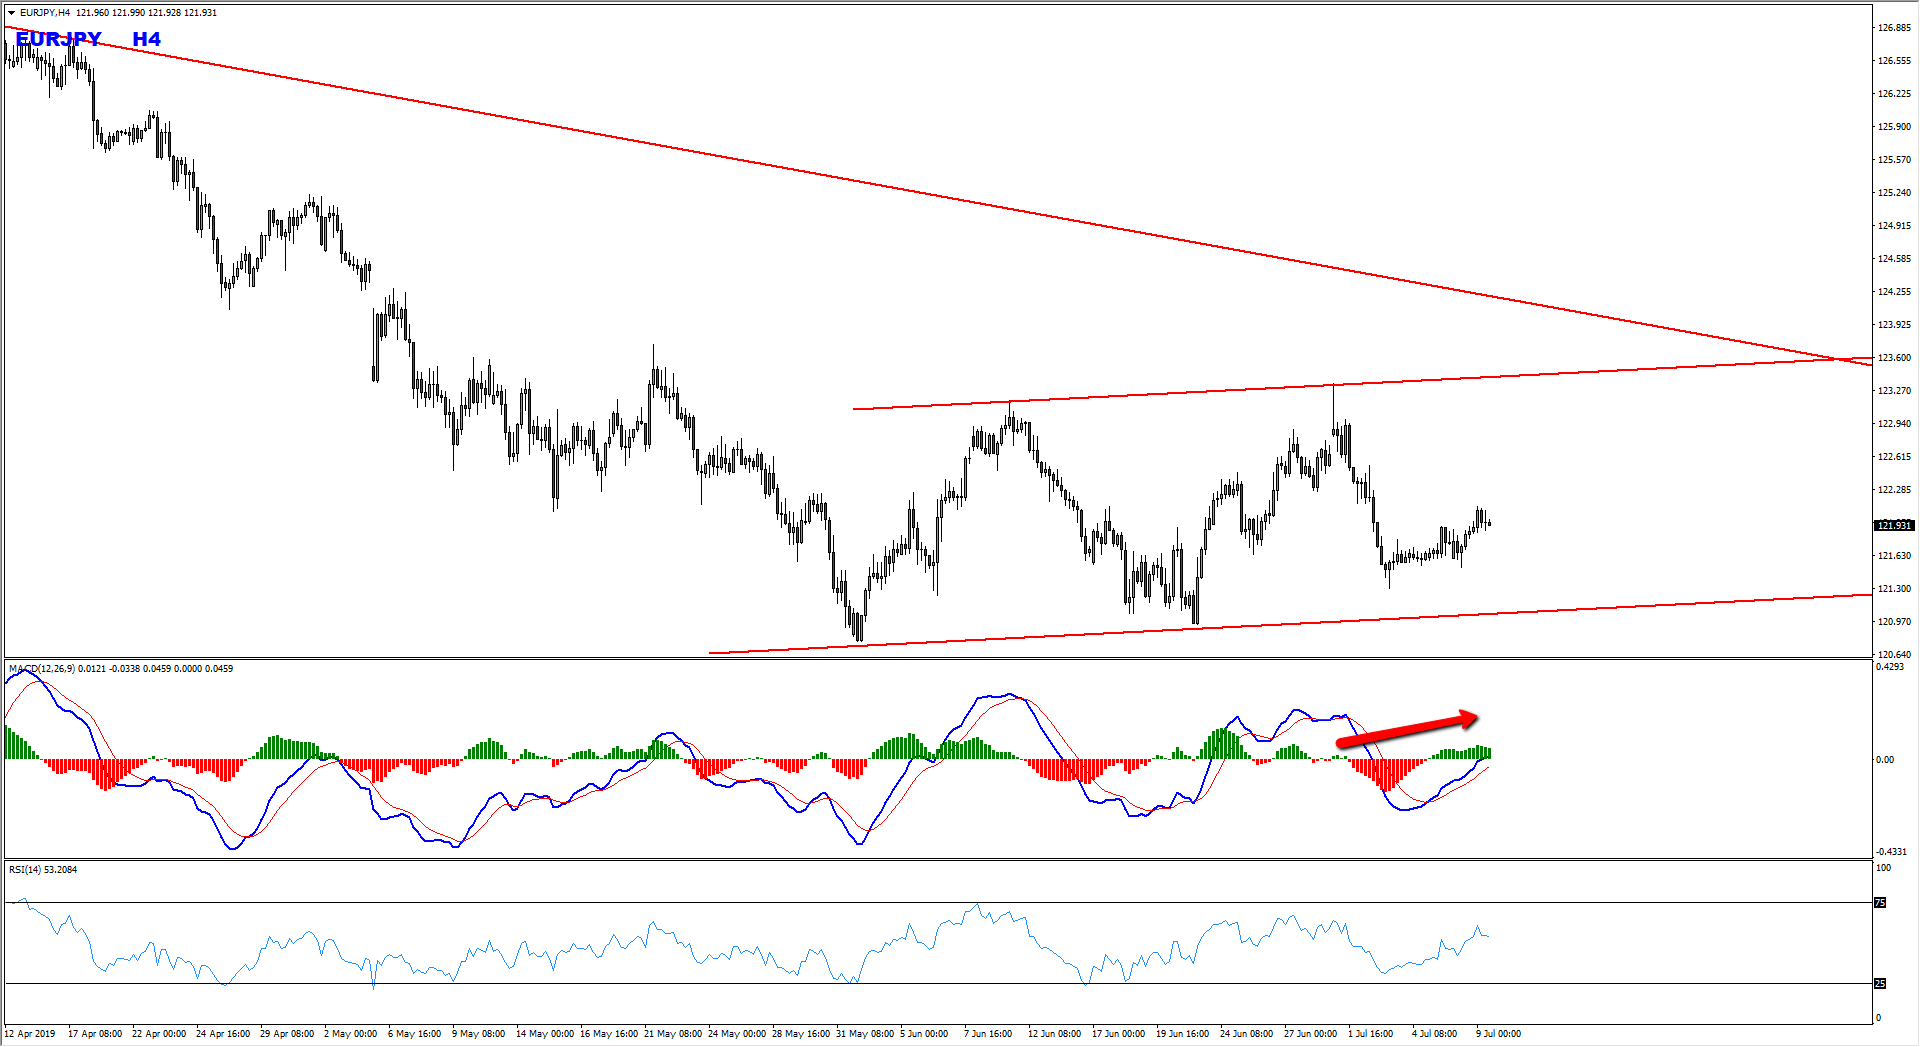 EURJPY Bearish Idea Based On SPT